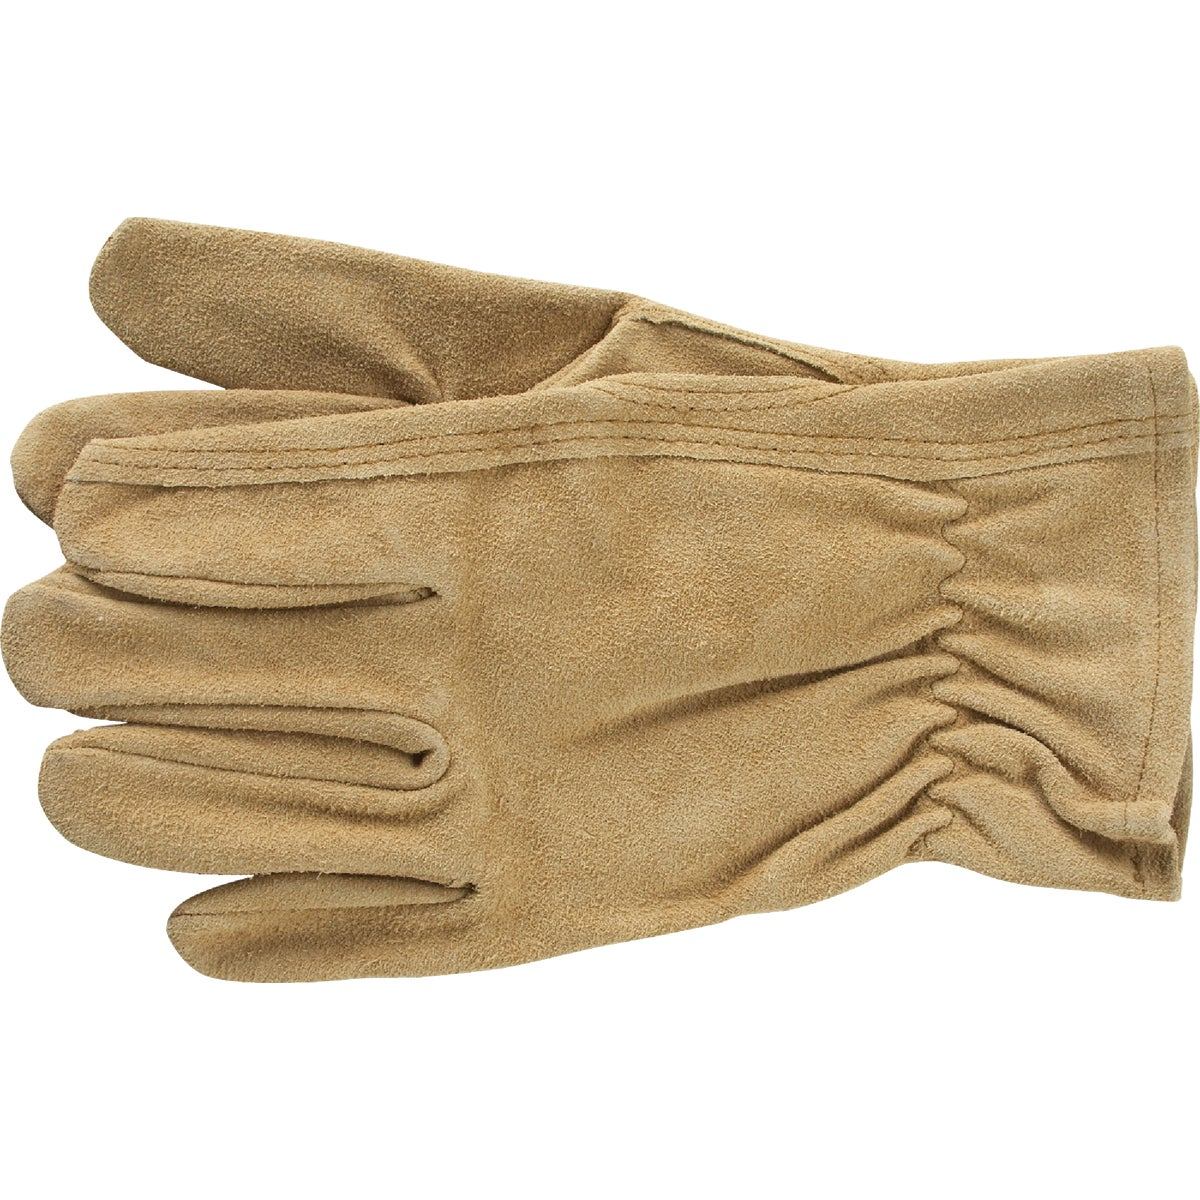 XL SUEDE LEATHER GLOVE - 728485 by Do it Best